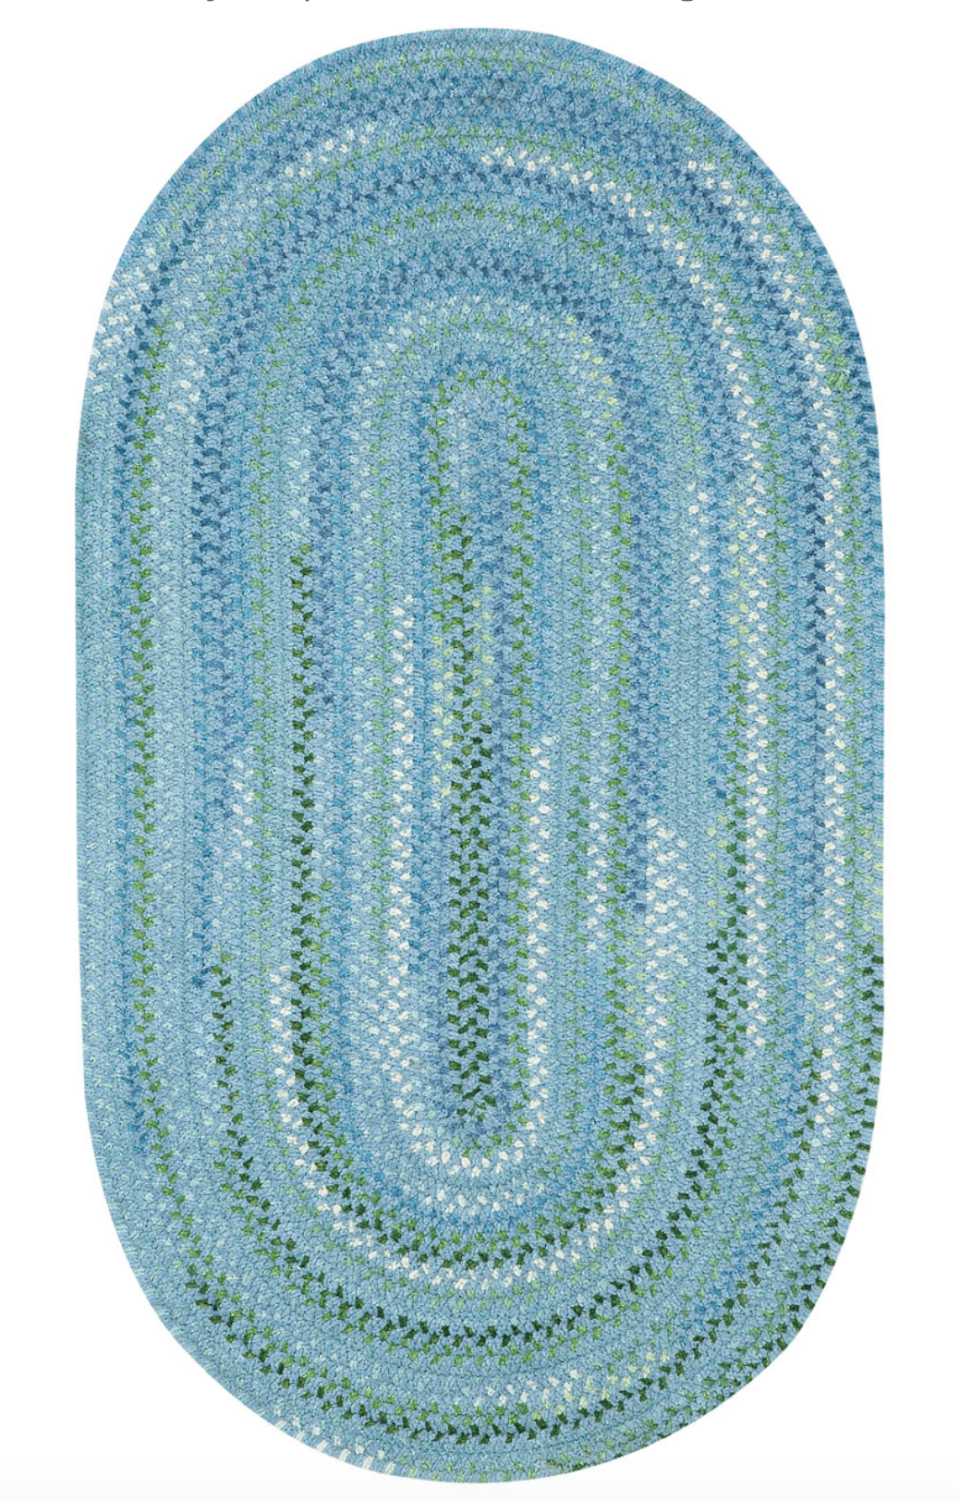 "<p>Capel Rugs</p><p><a href=""https://www.capelrugs.com/products/construction/braided-rugs/sailor-boy-deep-blue-sea-9"" rel=""nofollow noopener"" target=""_blank"" data-ylk=""slk:Shop Now"" class=""link rapid-noclick-resp"">Shop Now</a></p>"